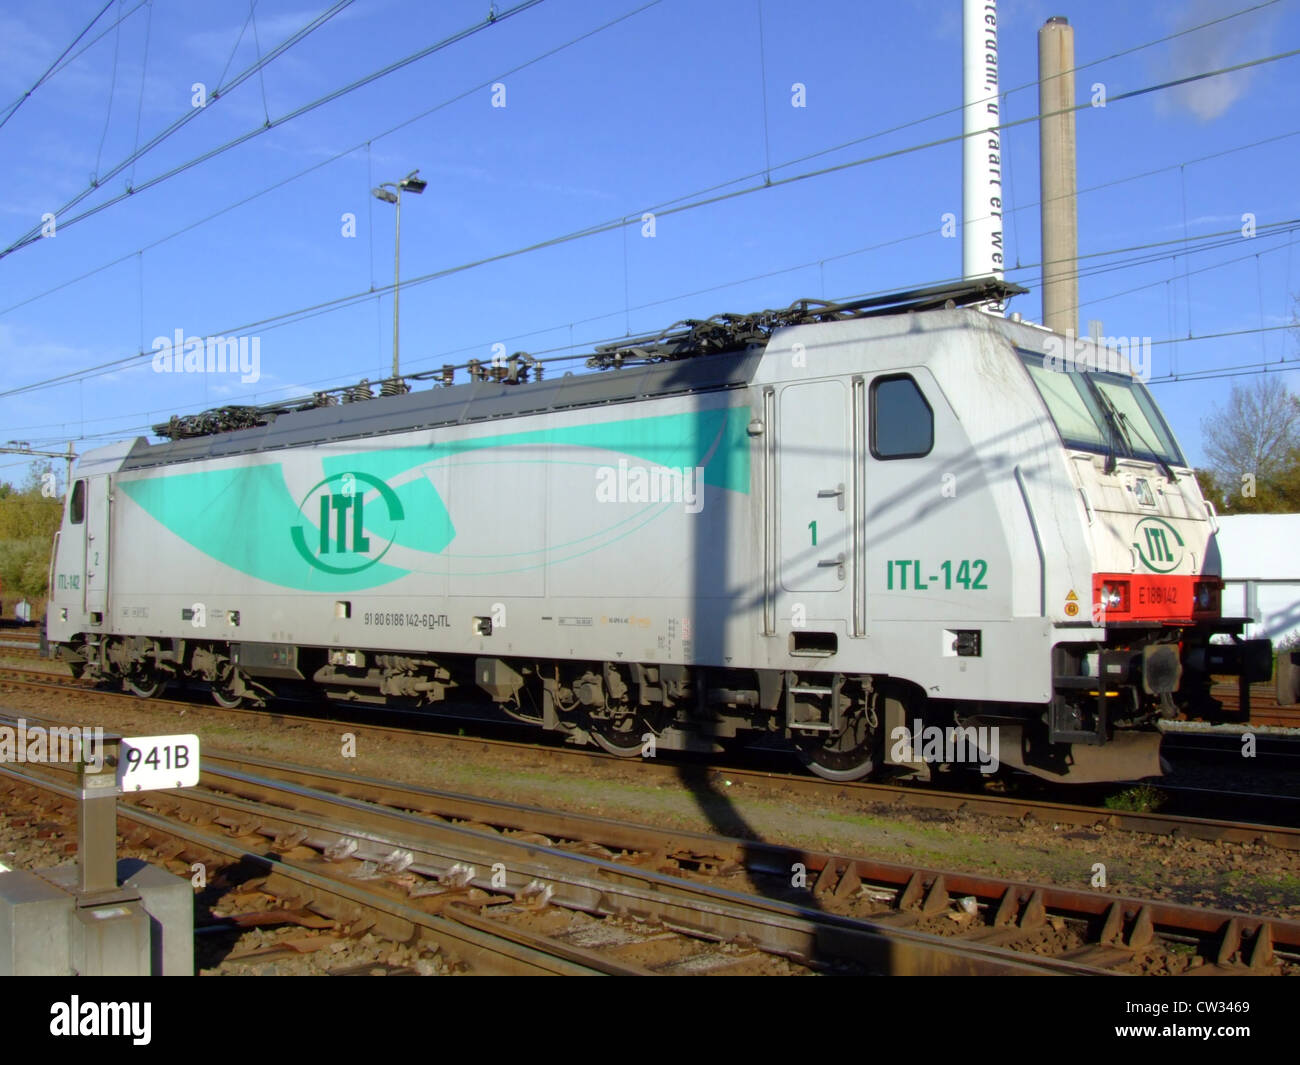 ITL 91 80 6186 142-6 D-ITL - Stock Image